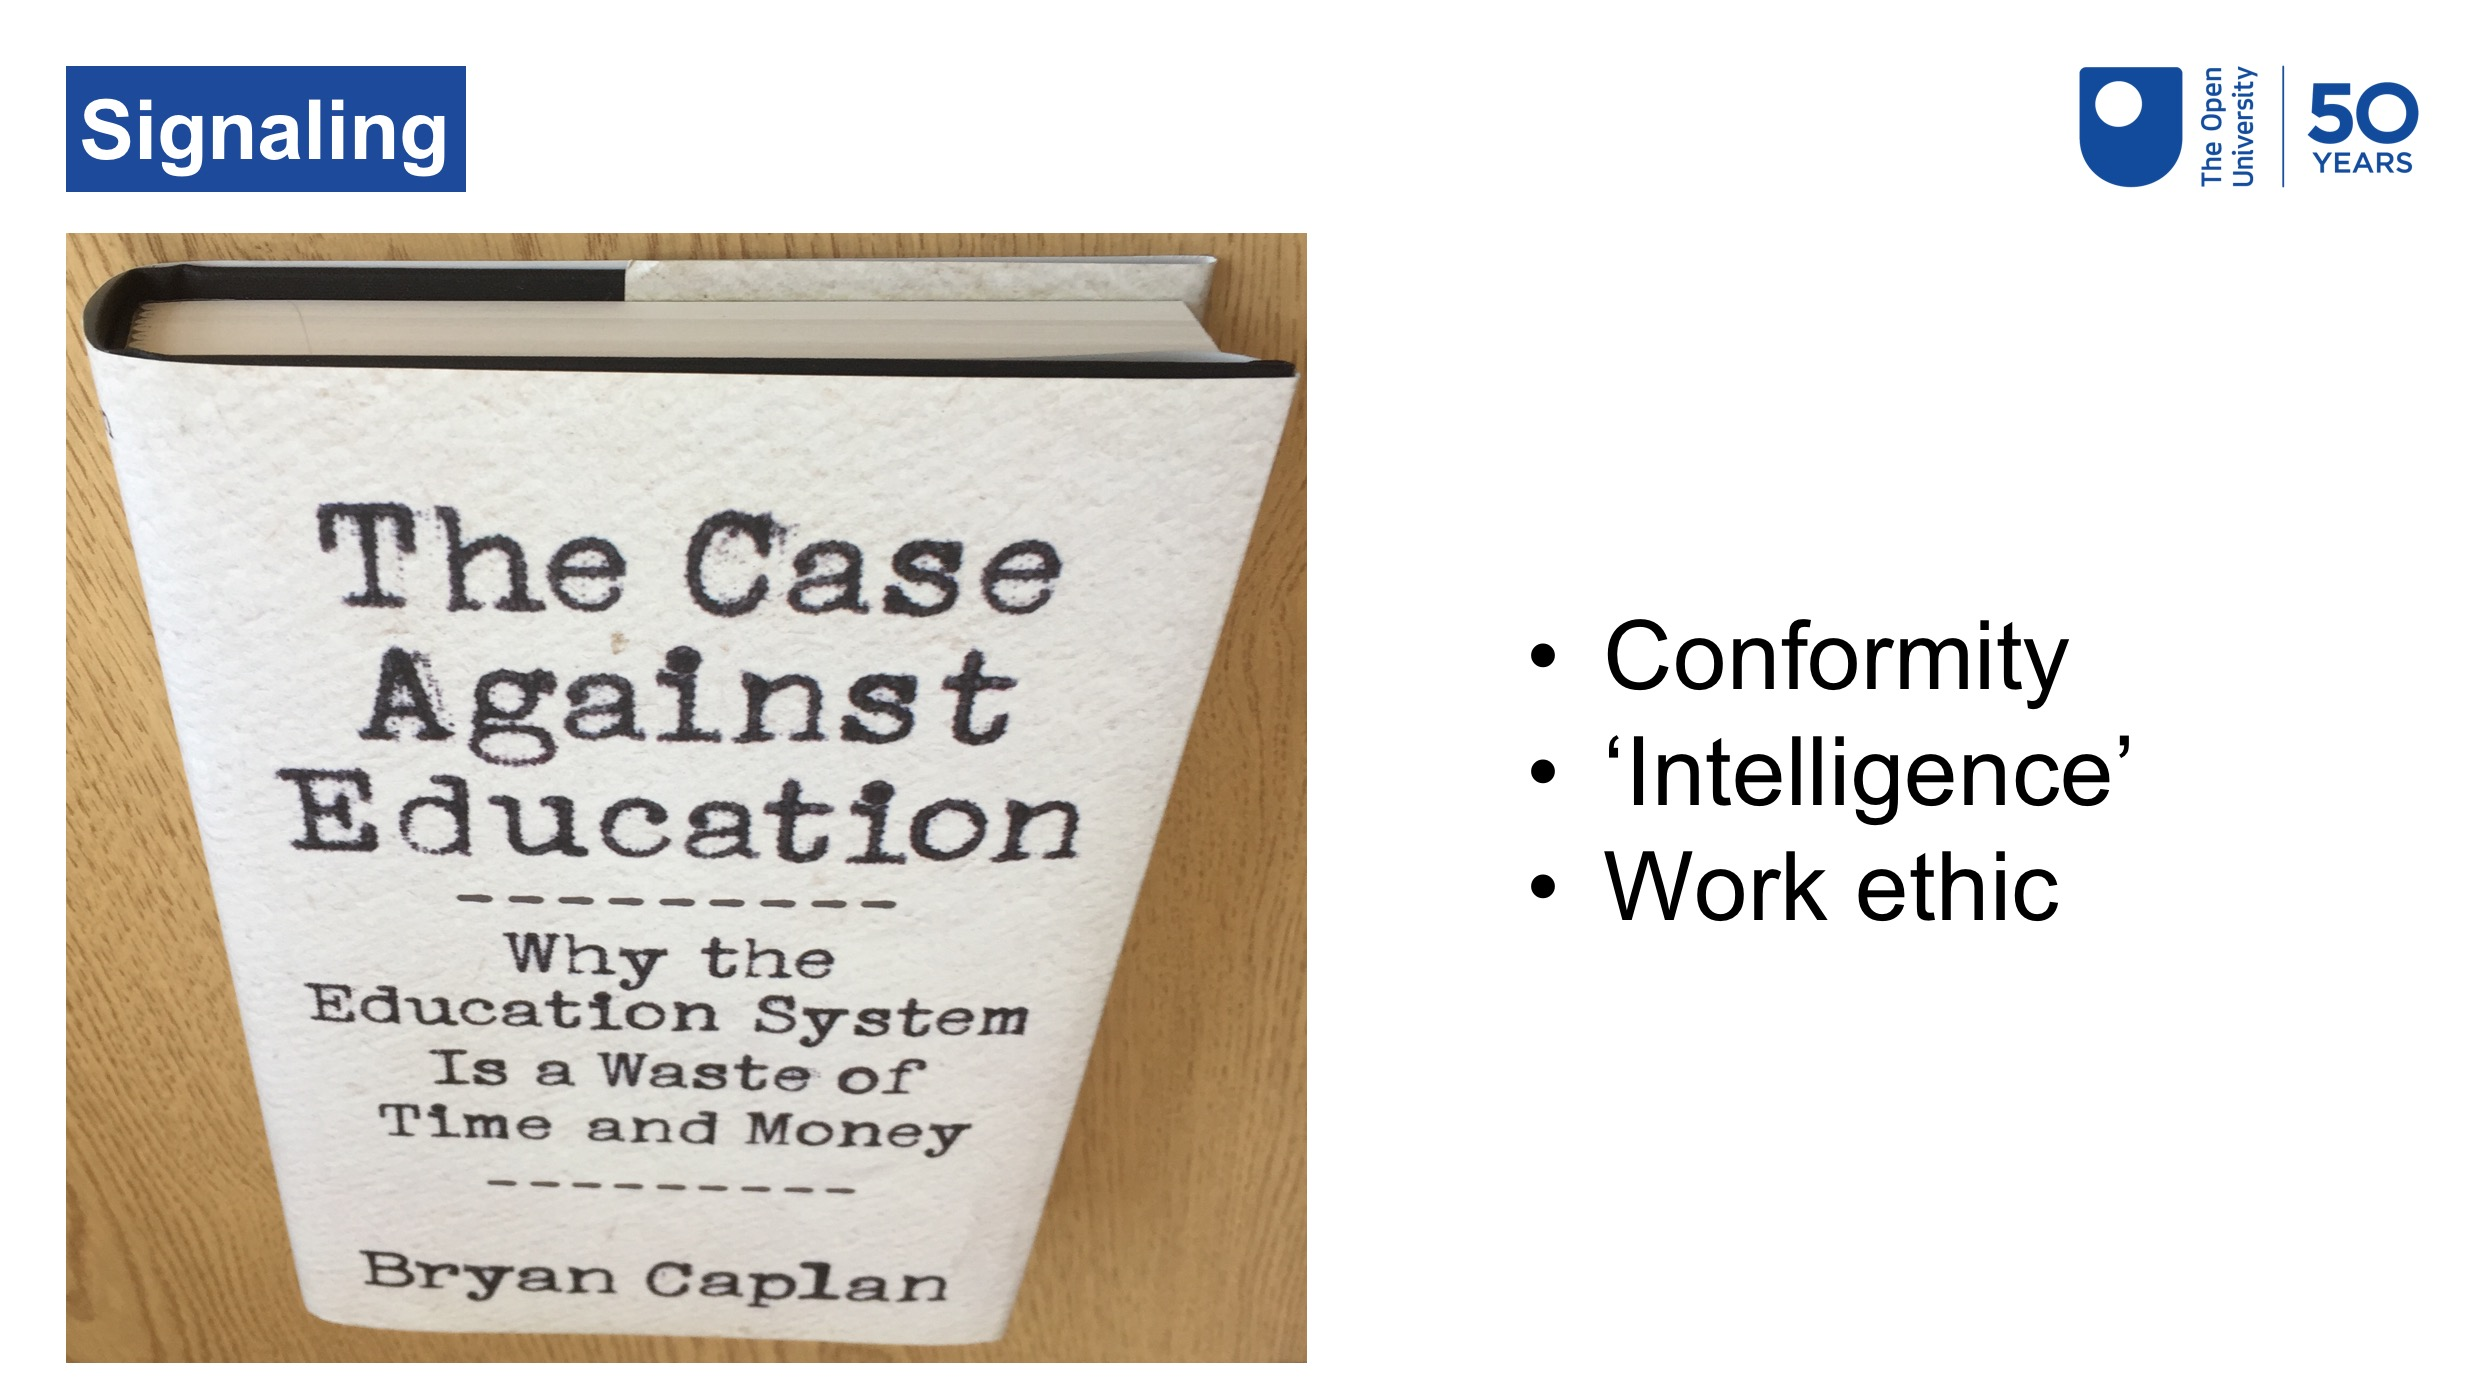 Photo of The Case Against Education by Bryan Caplan